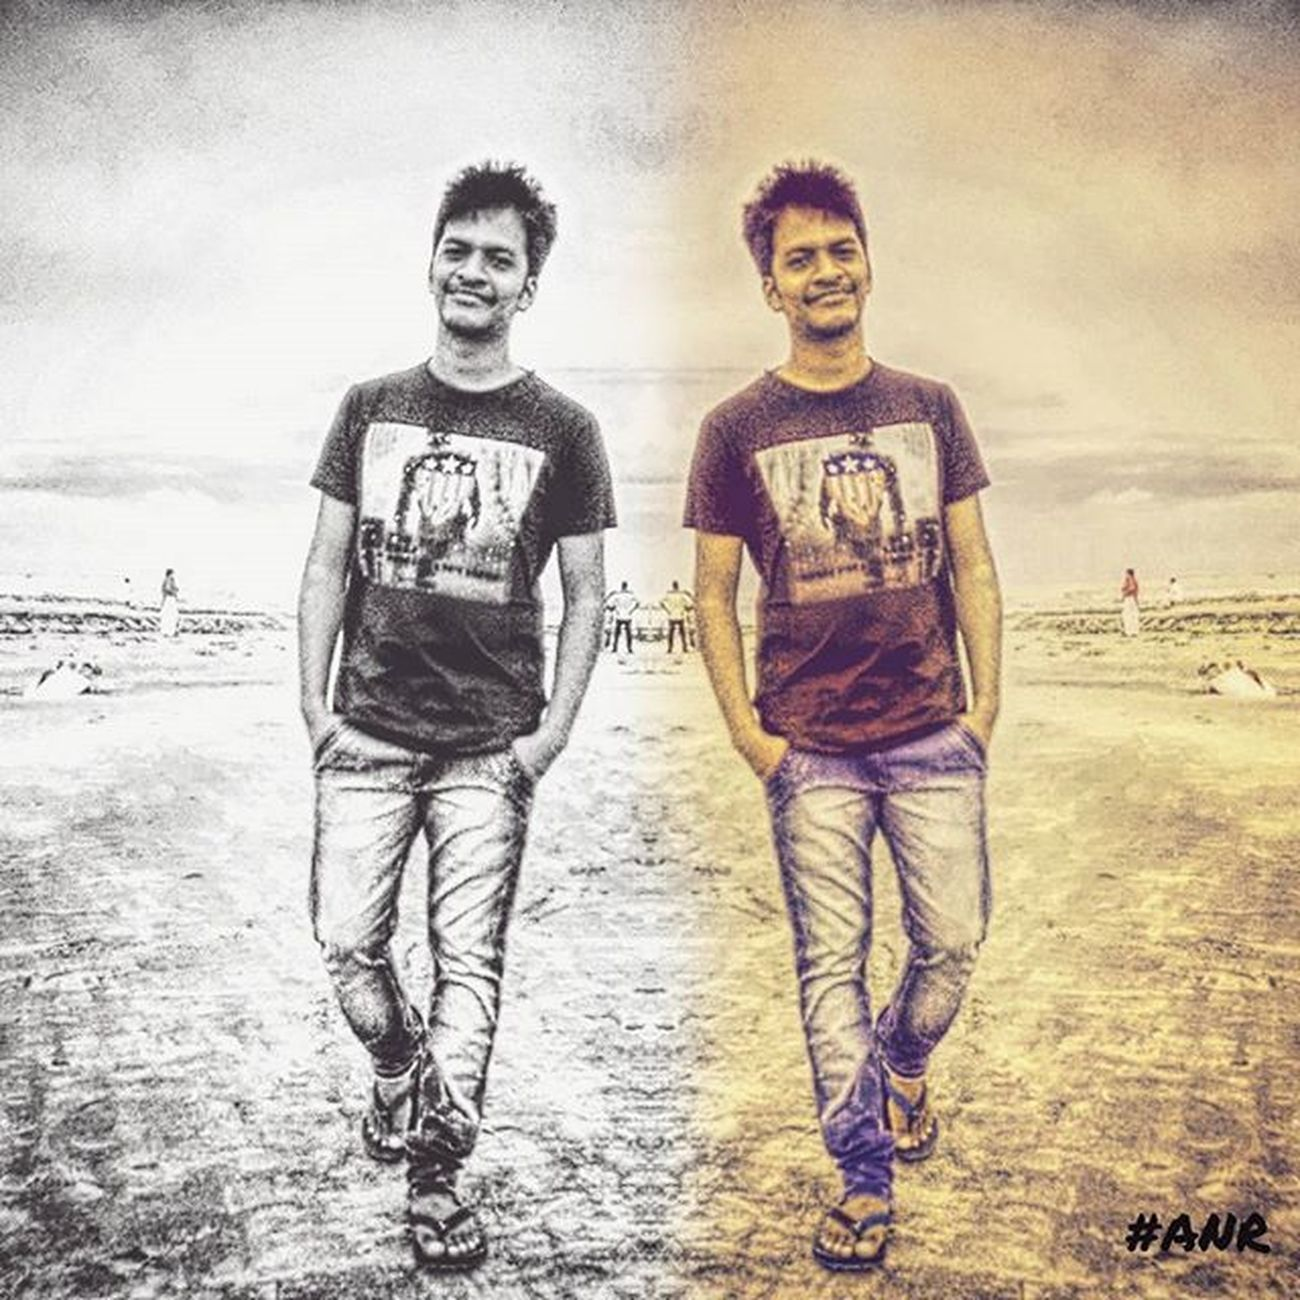 Hot Cool Dual Blackandwhite Color Vintage Beach Cuddalorebeach Walkwithstyle Smile Puma Handsome Cute CruzerClickz📷 CruzerEditz Nrd